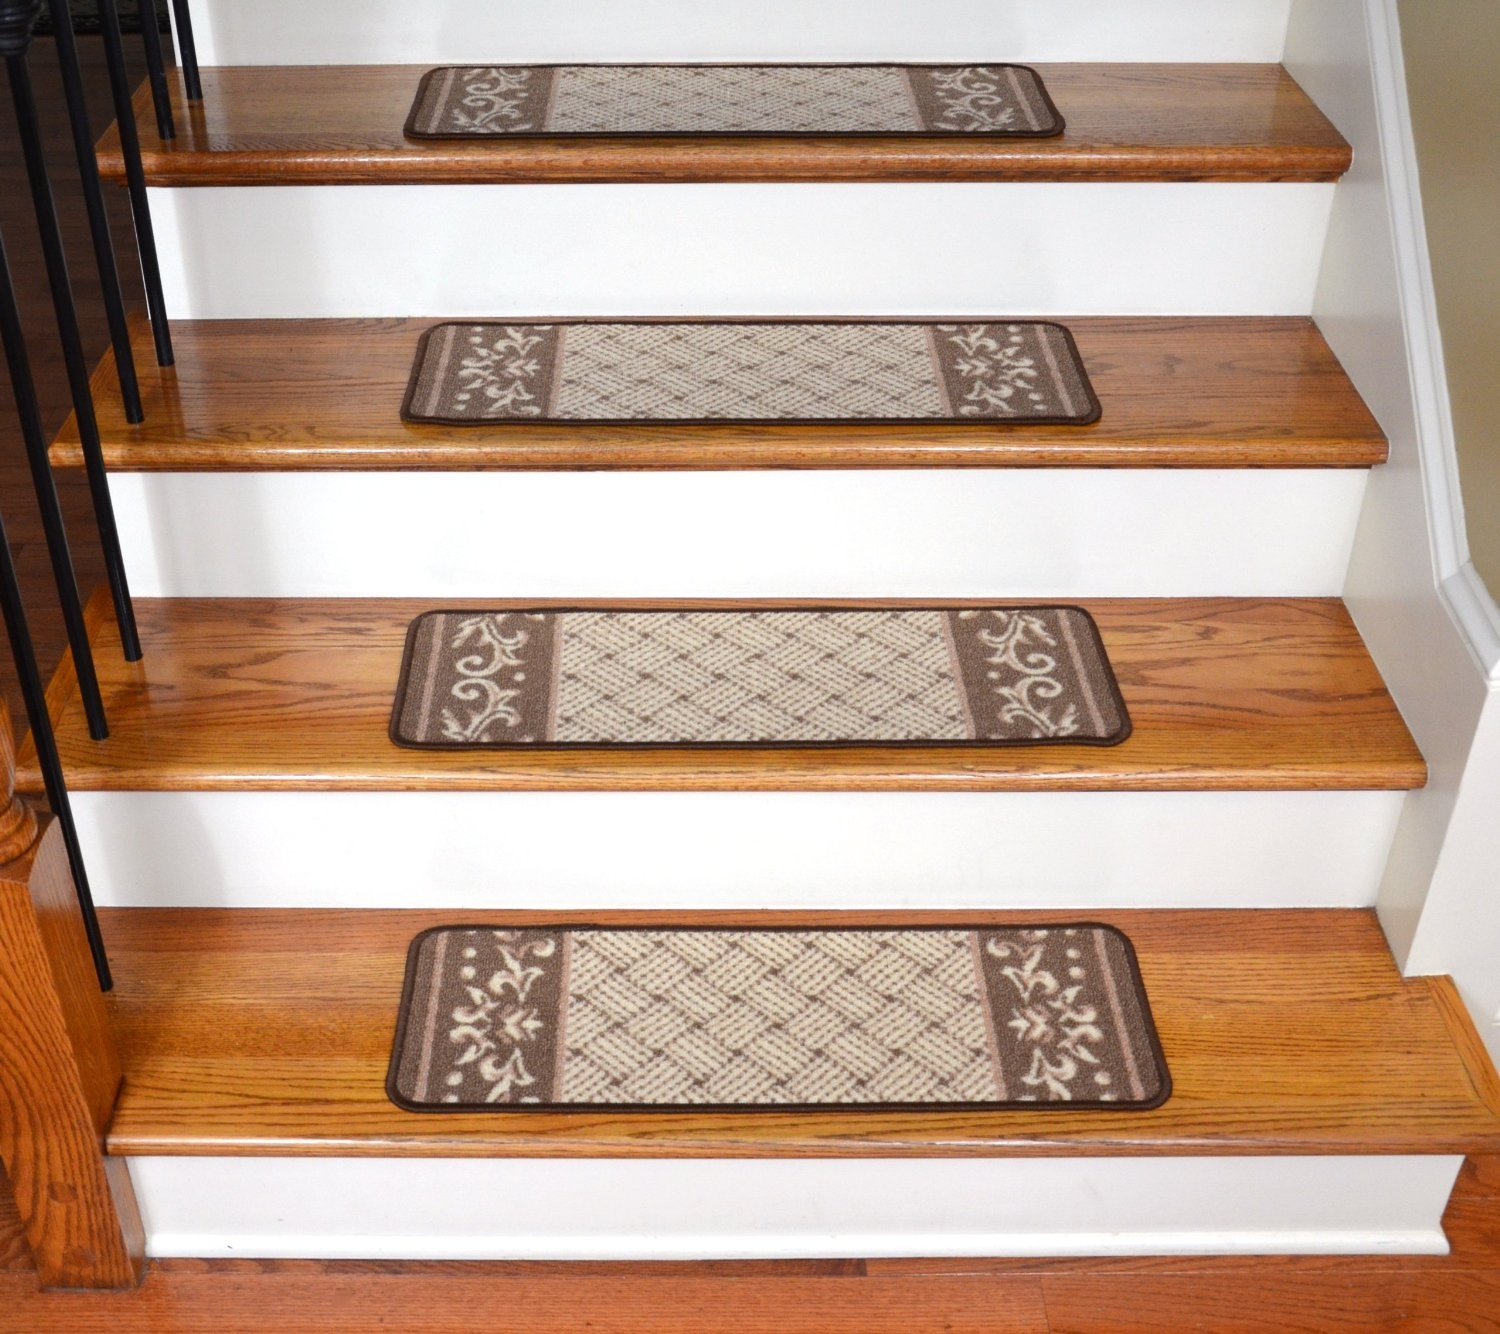 Exterior Interesting Stair Treads For Interior And Exterior Pertaining To Individual Stair Tread Rugs (View 8 of 20)